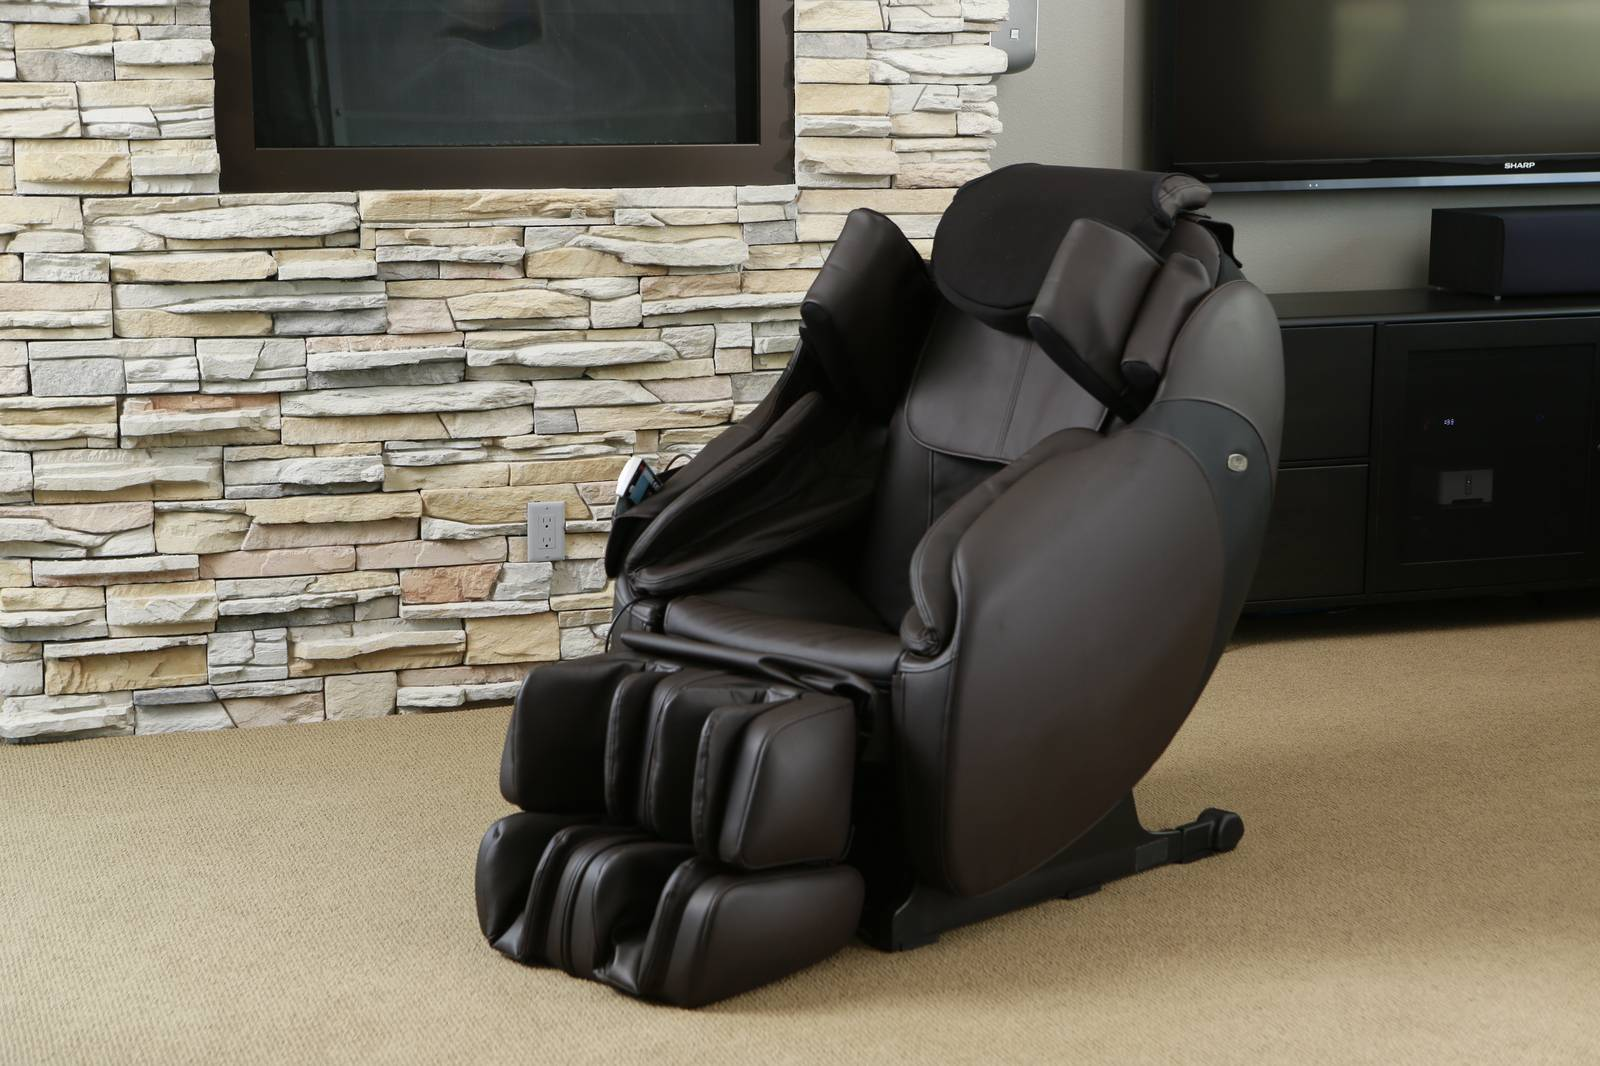 Inada Sogno Dreamwave Massage Chair Inada 3s Medical Massage Chair Australia Inada Massage Chairs